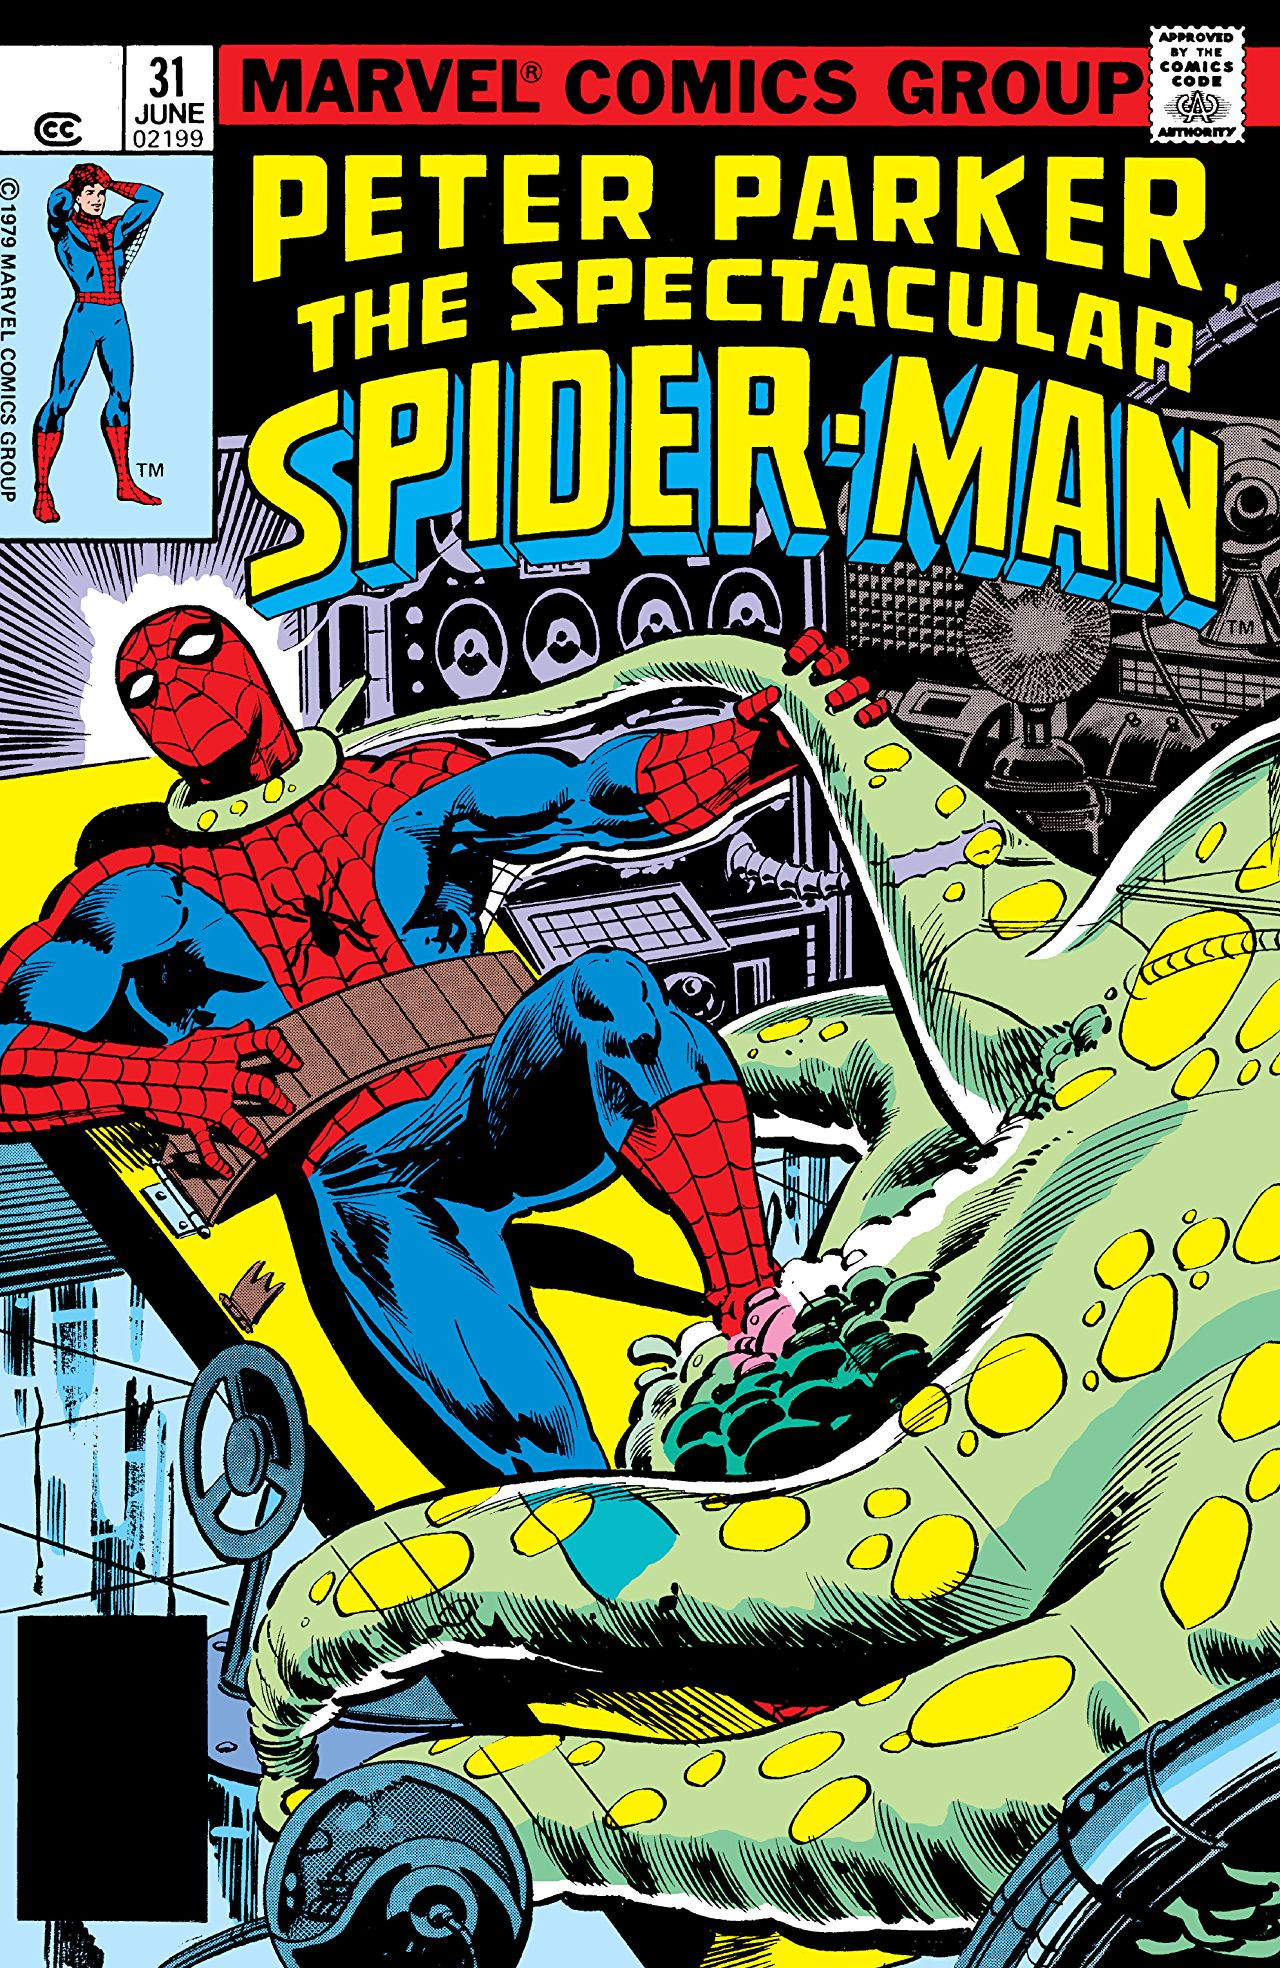 Peter Parker, The Spectacular Spider-Man Vol 1 31